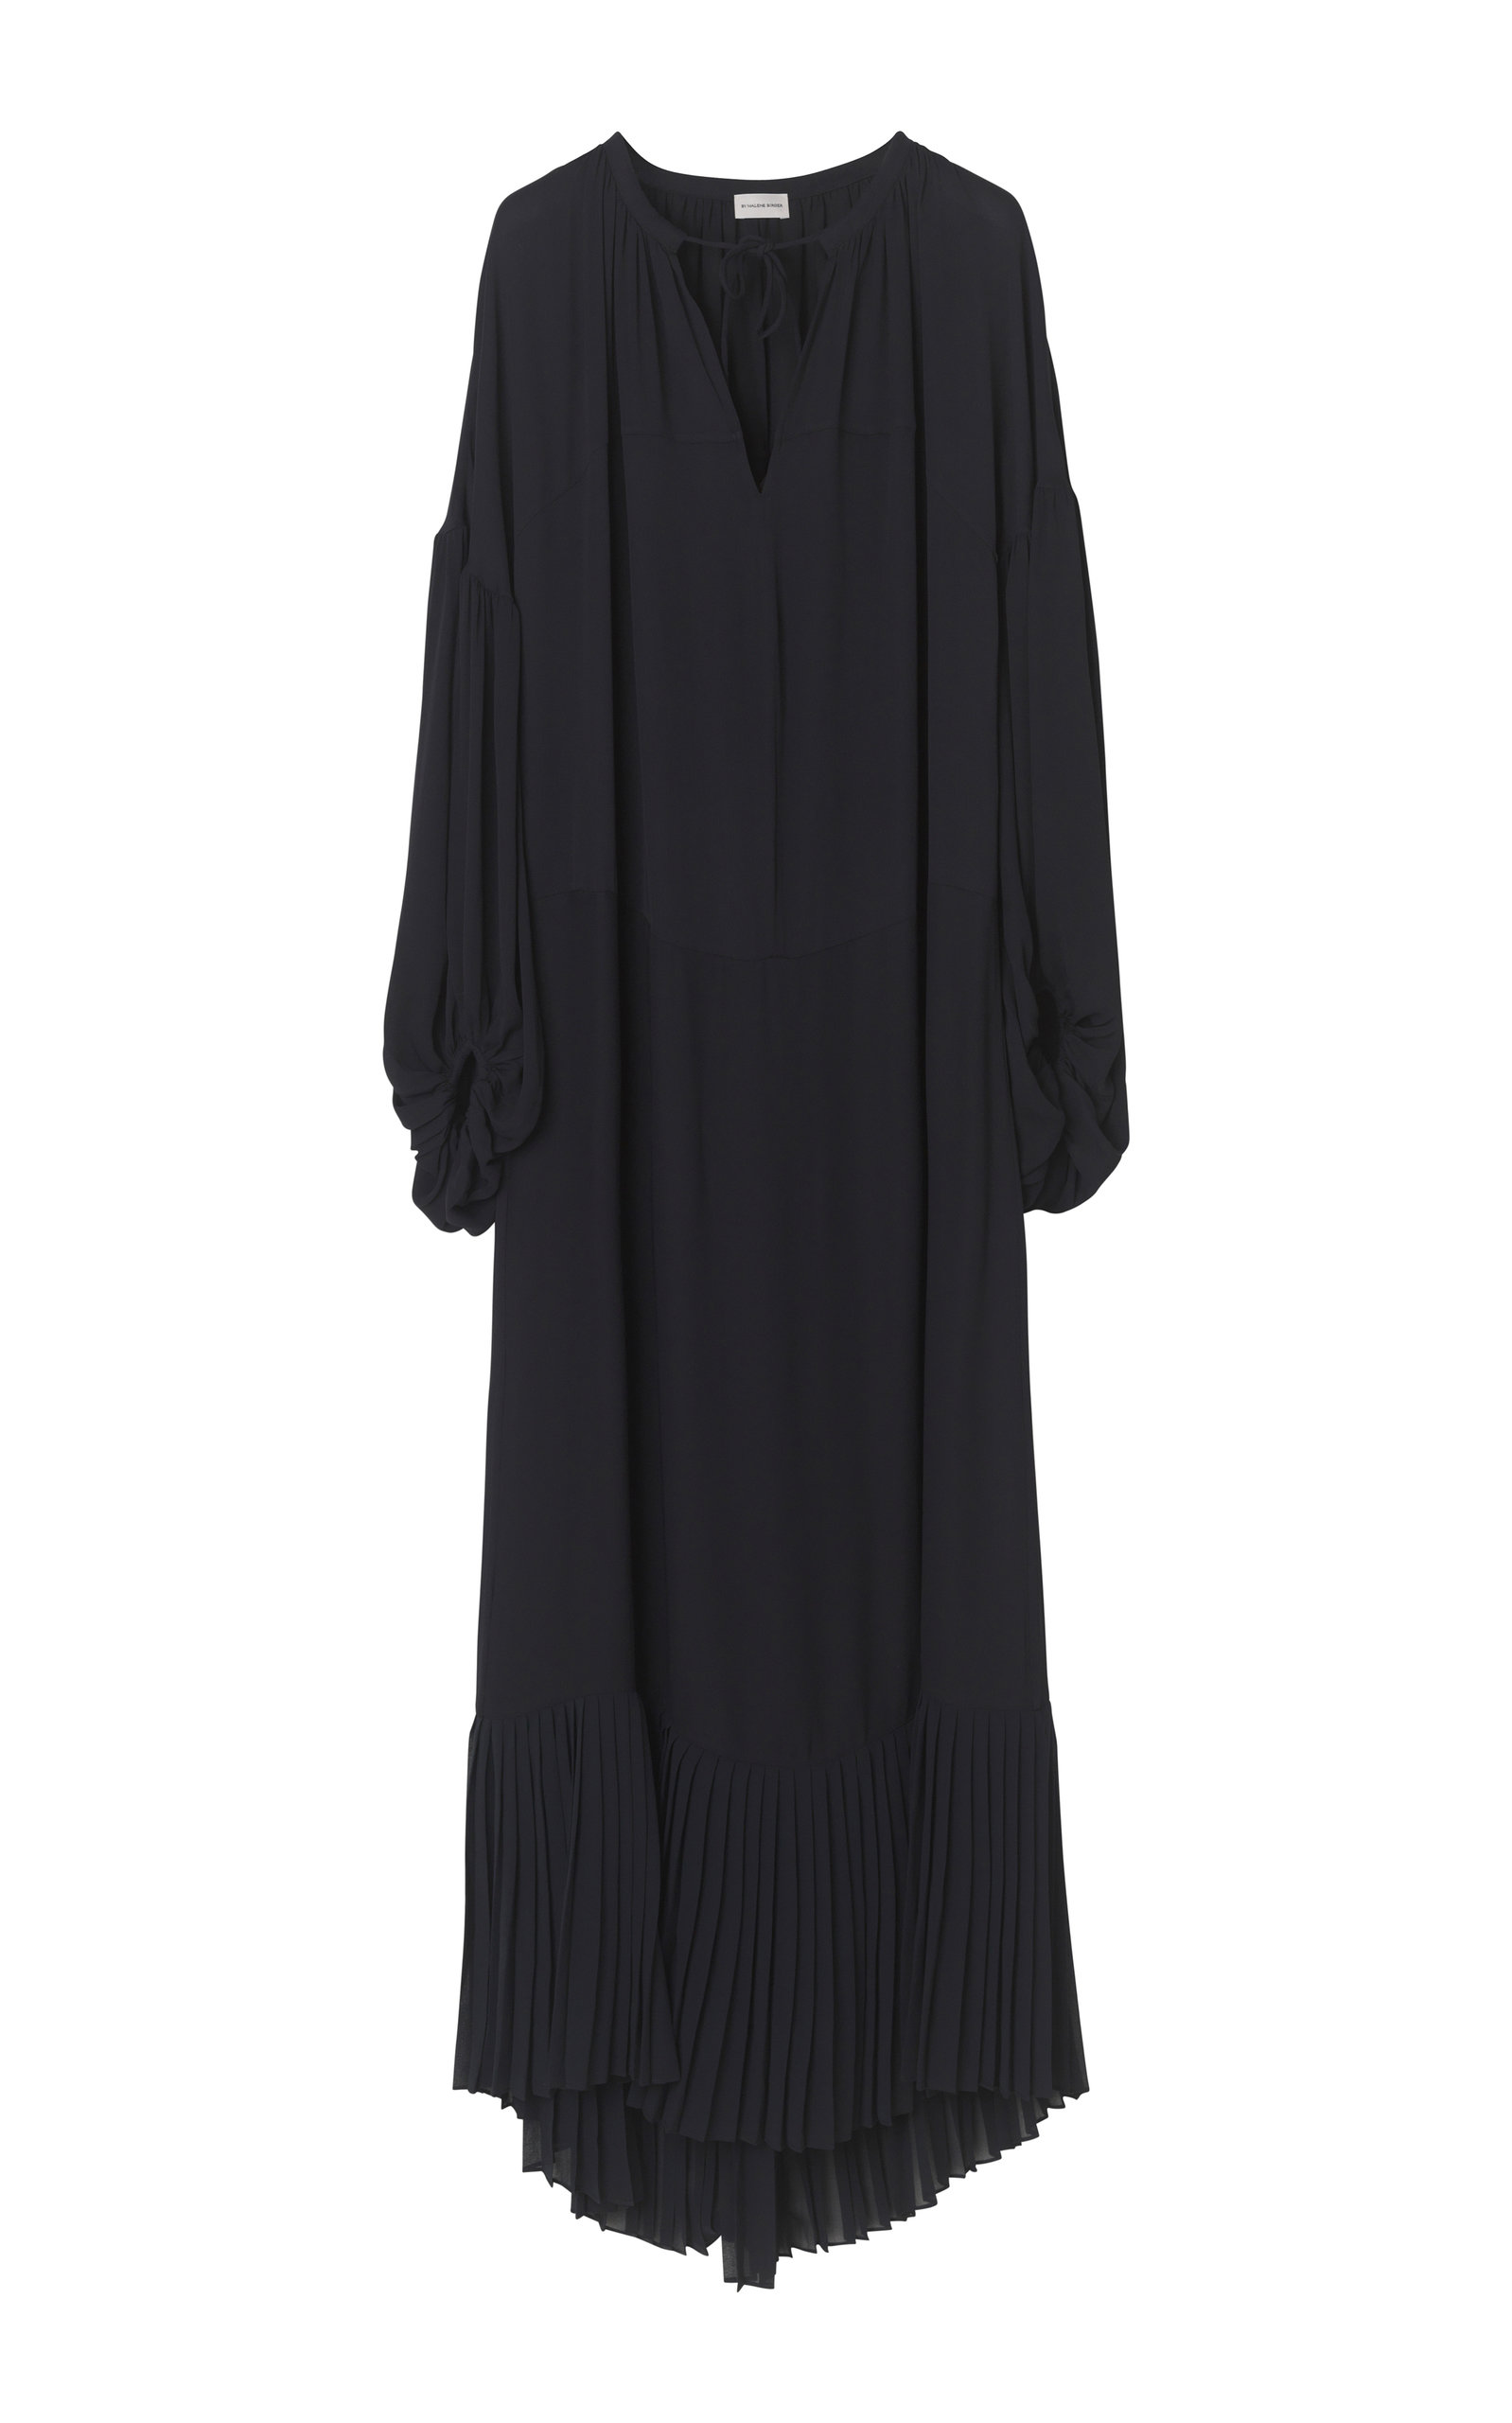 Buy By Malene Birger Selinah Solid Viscose Crepe Dress online, shop By Malene Birger at the best price